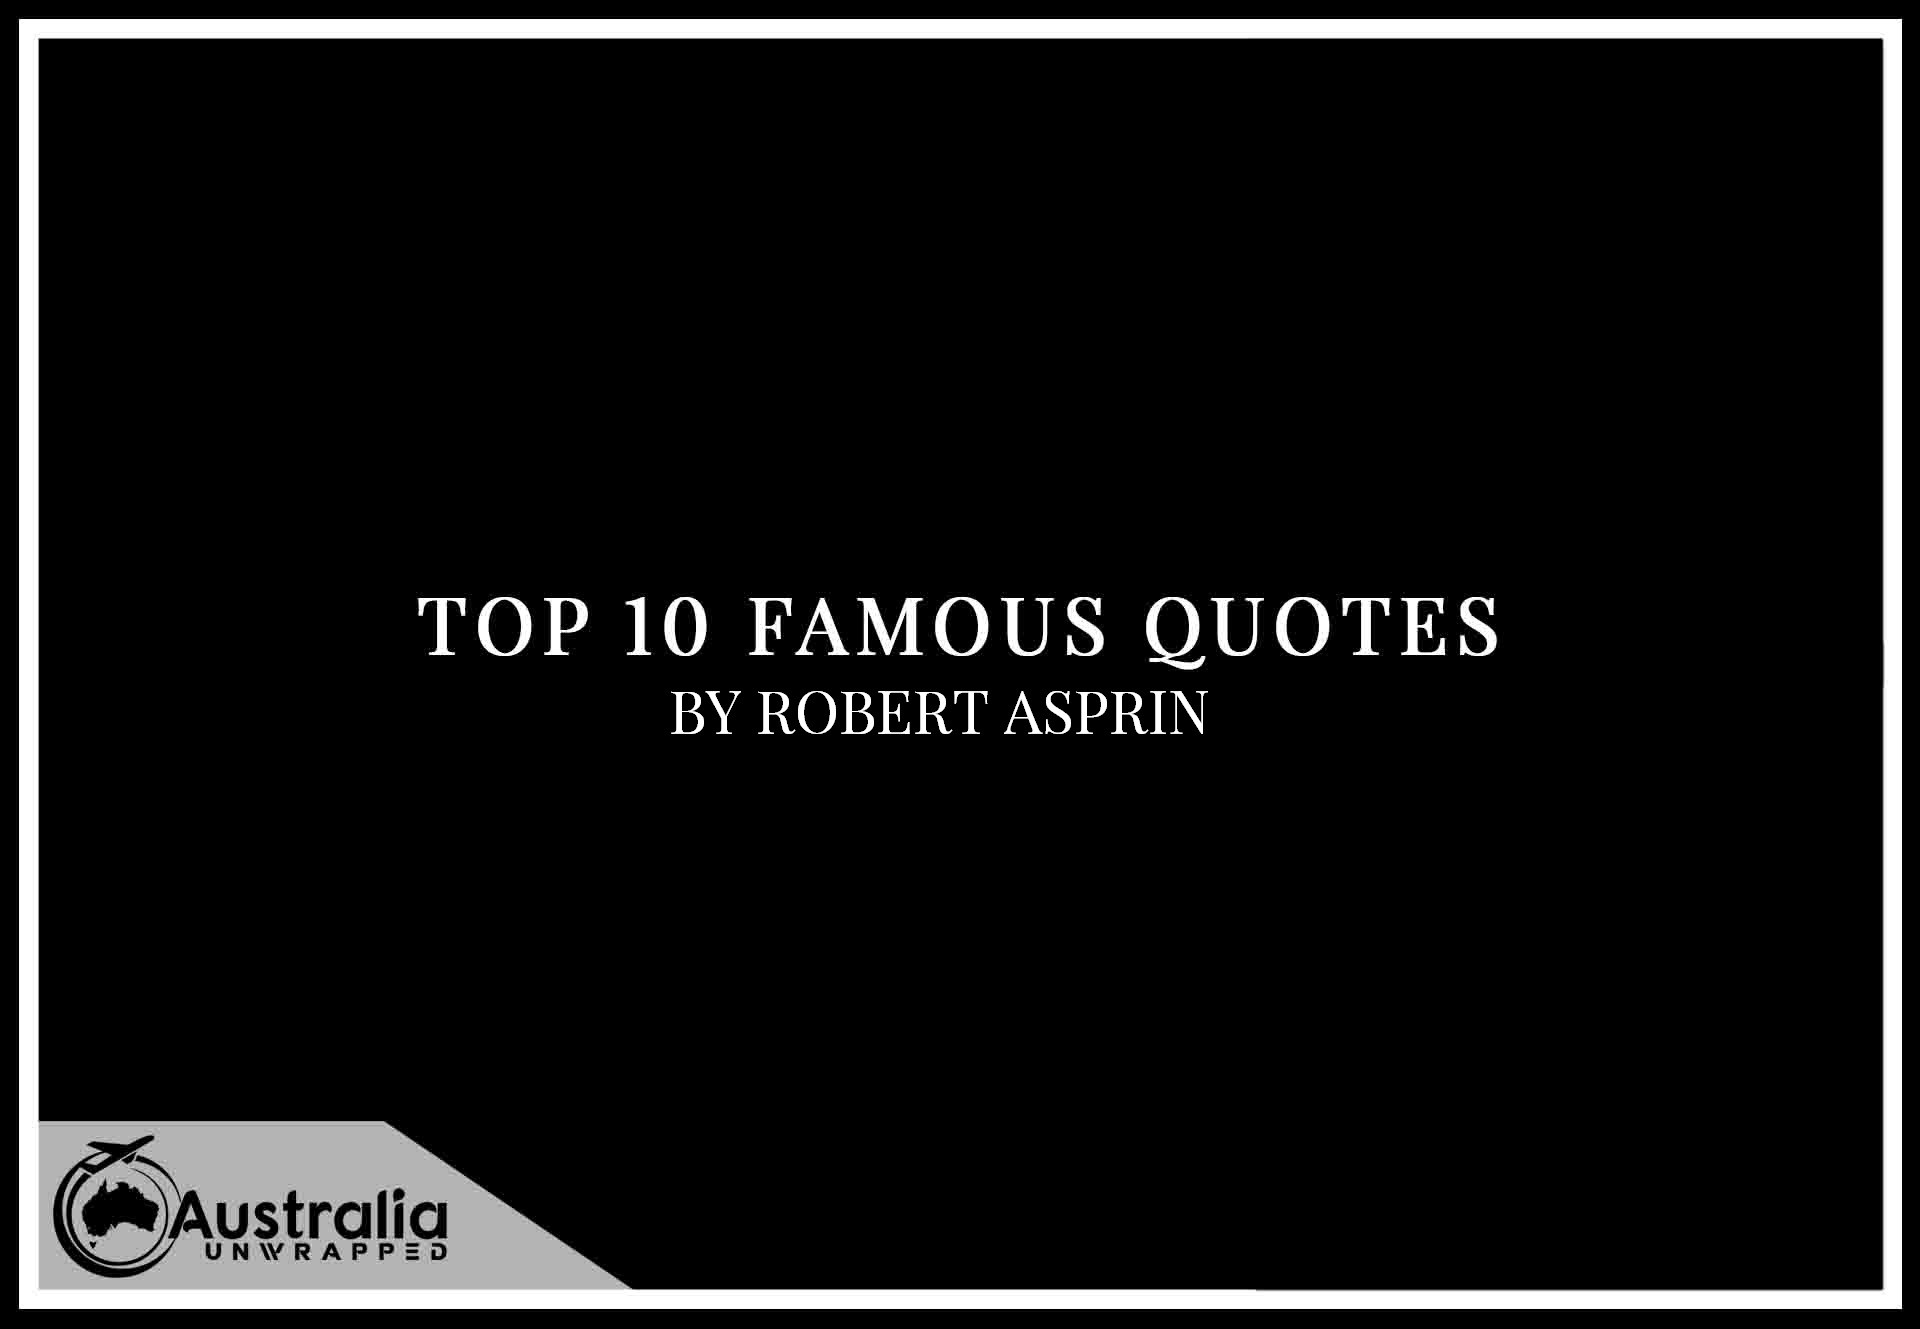 Top 10 Famous Quotes by Author Robert Asprin